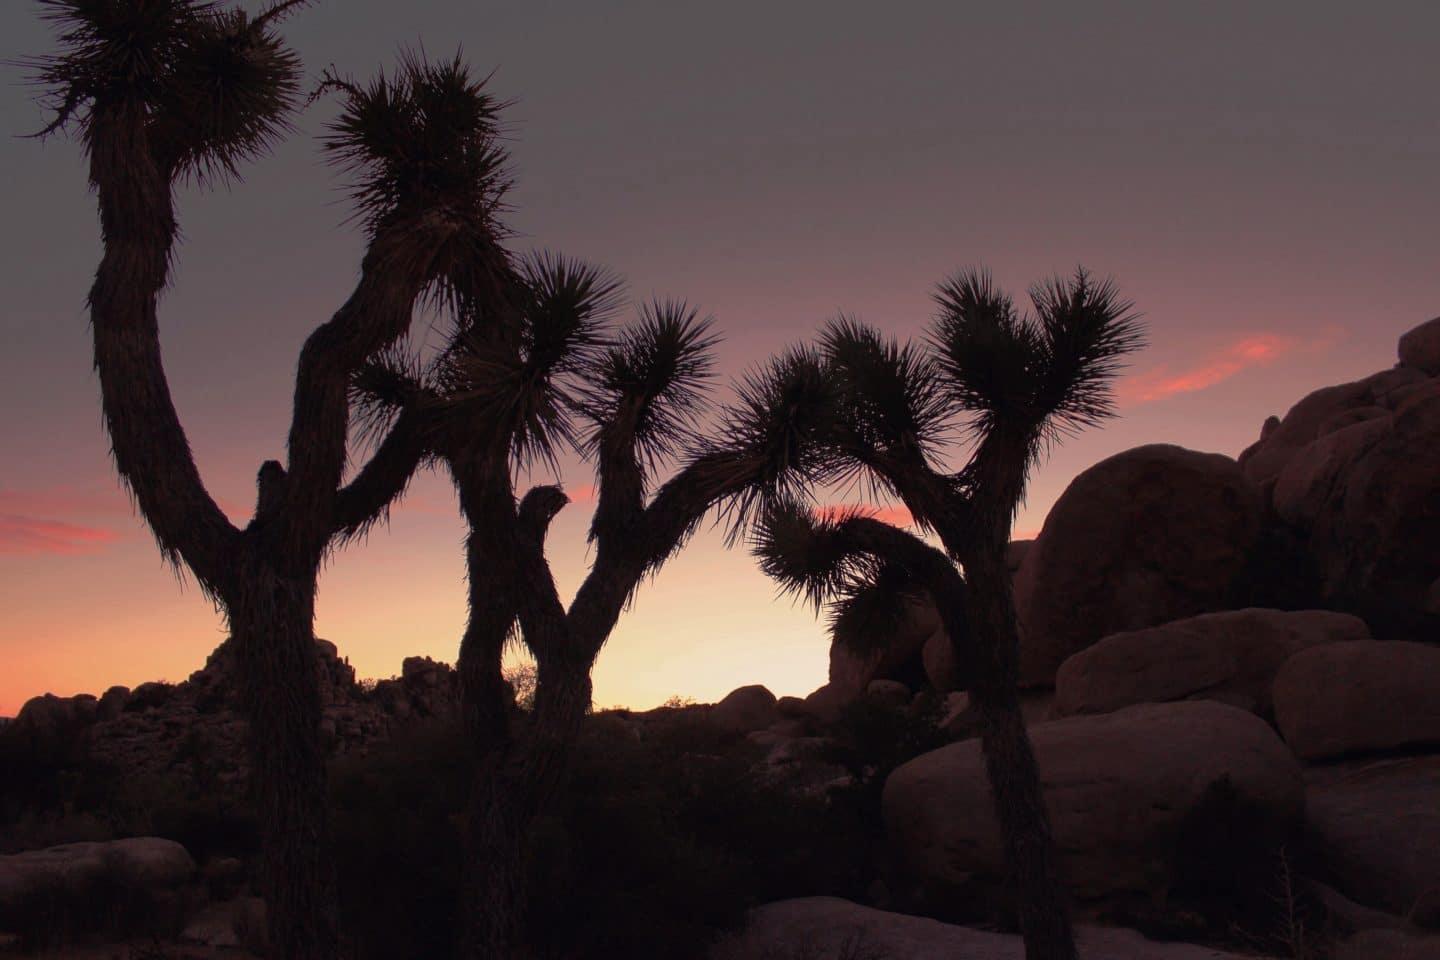 Update: Joshua Tree National Park Isn't Closing After All